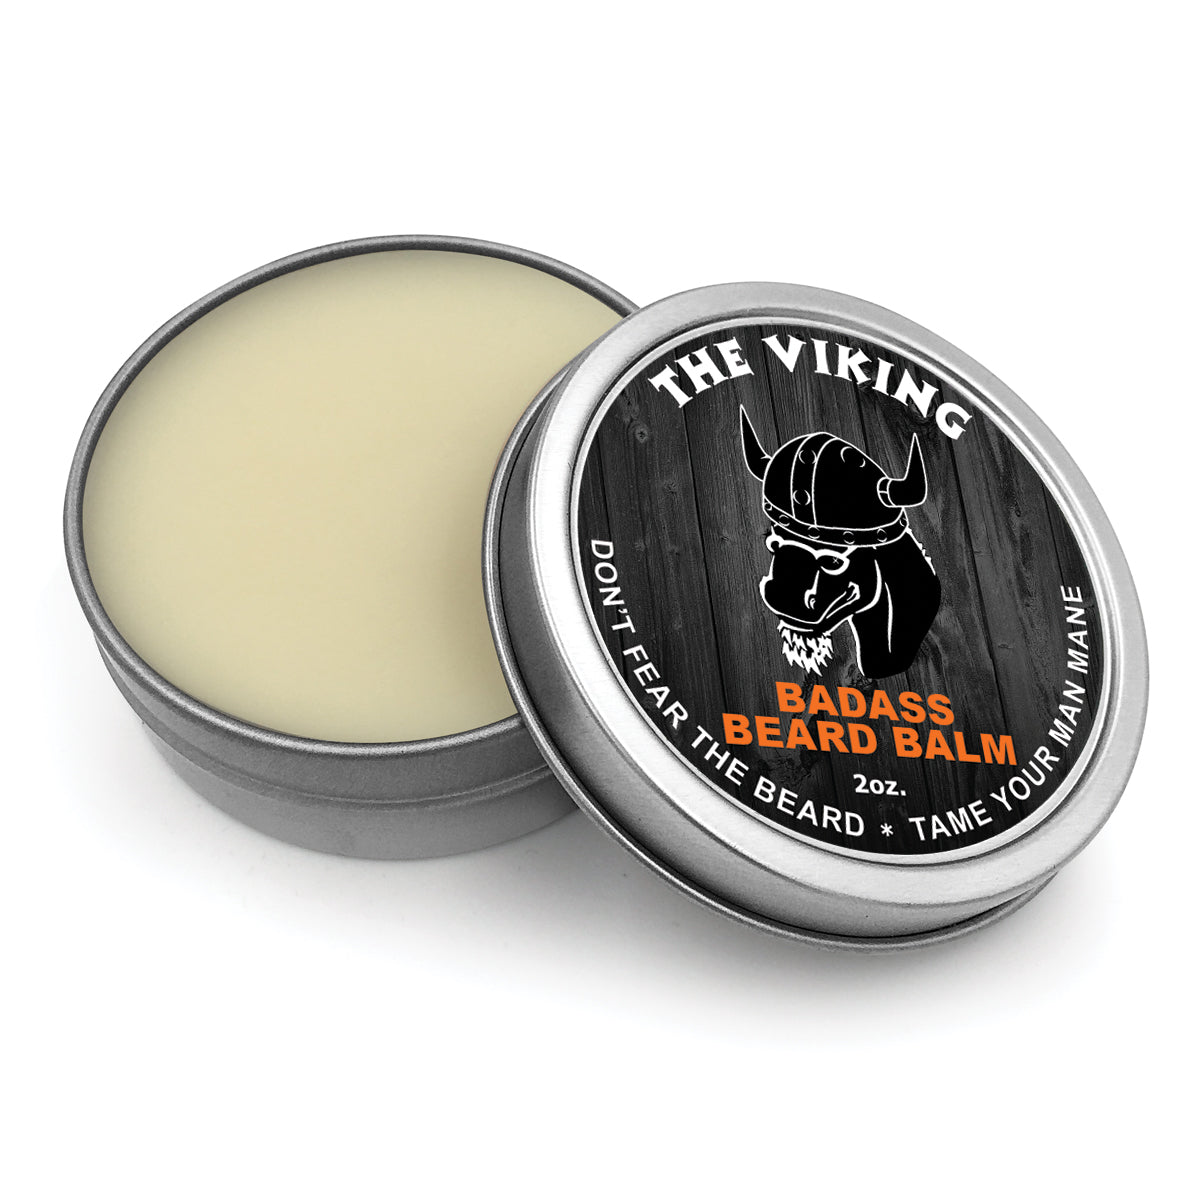 The Viking Badass Beard Balm